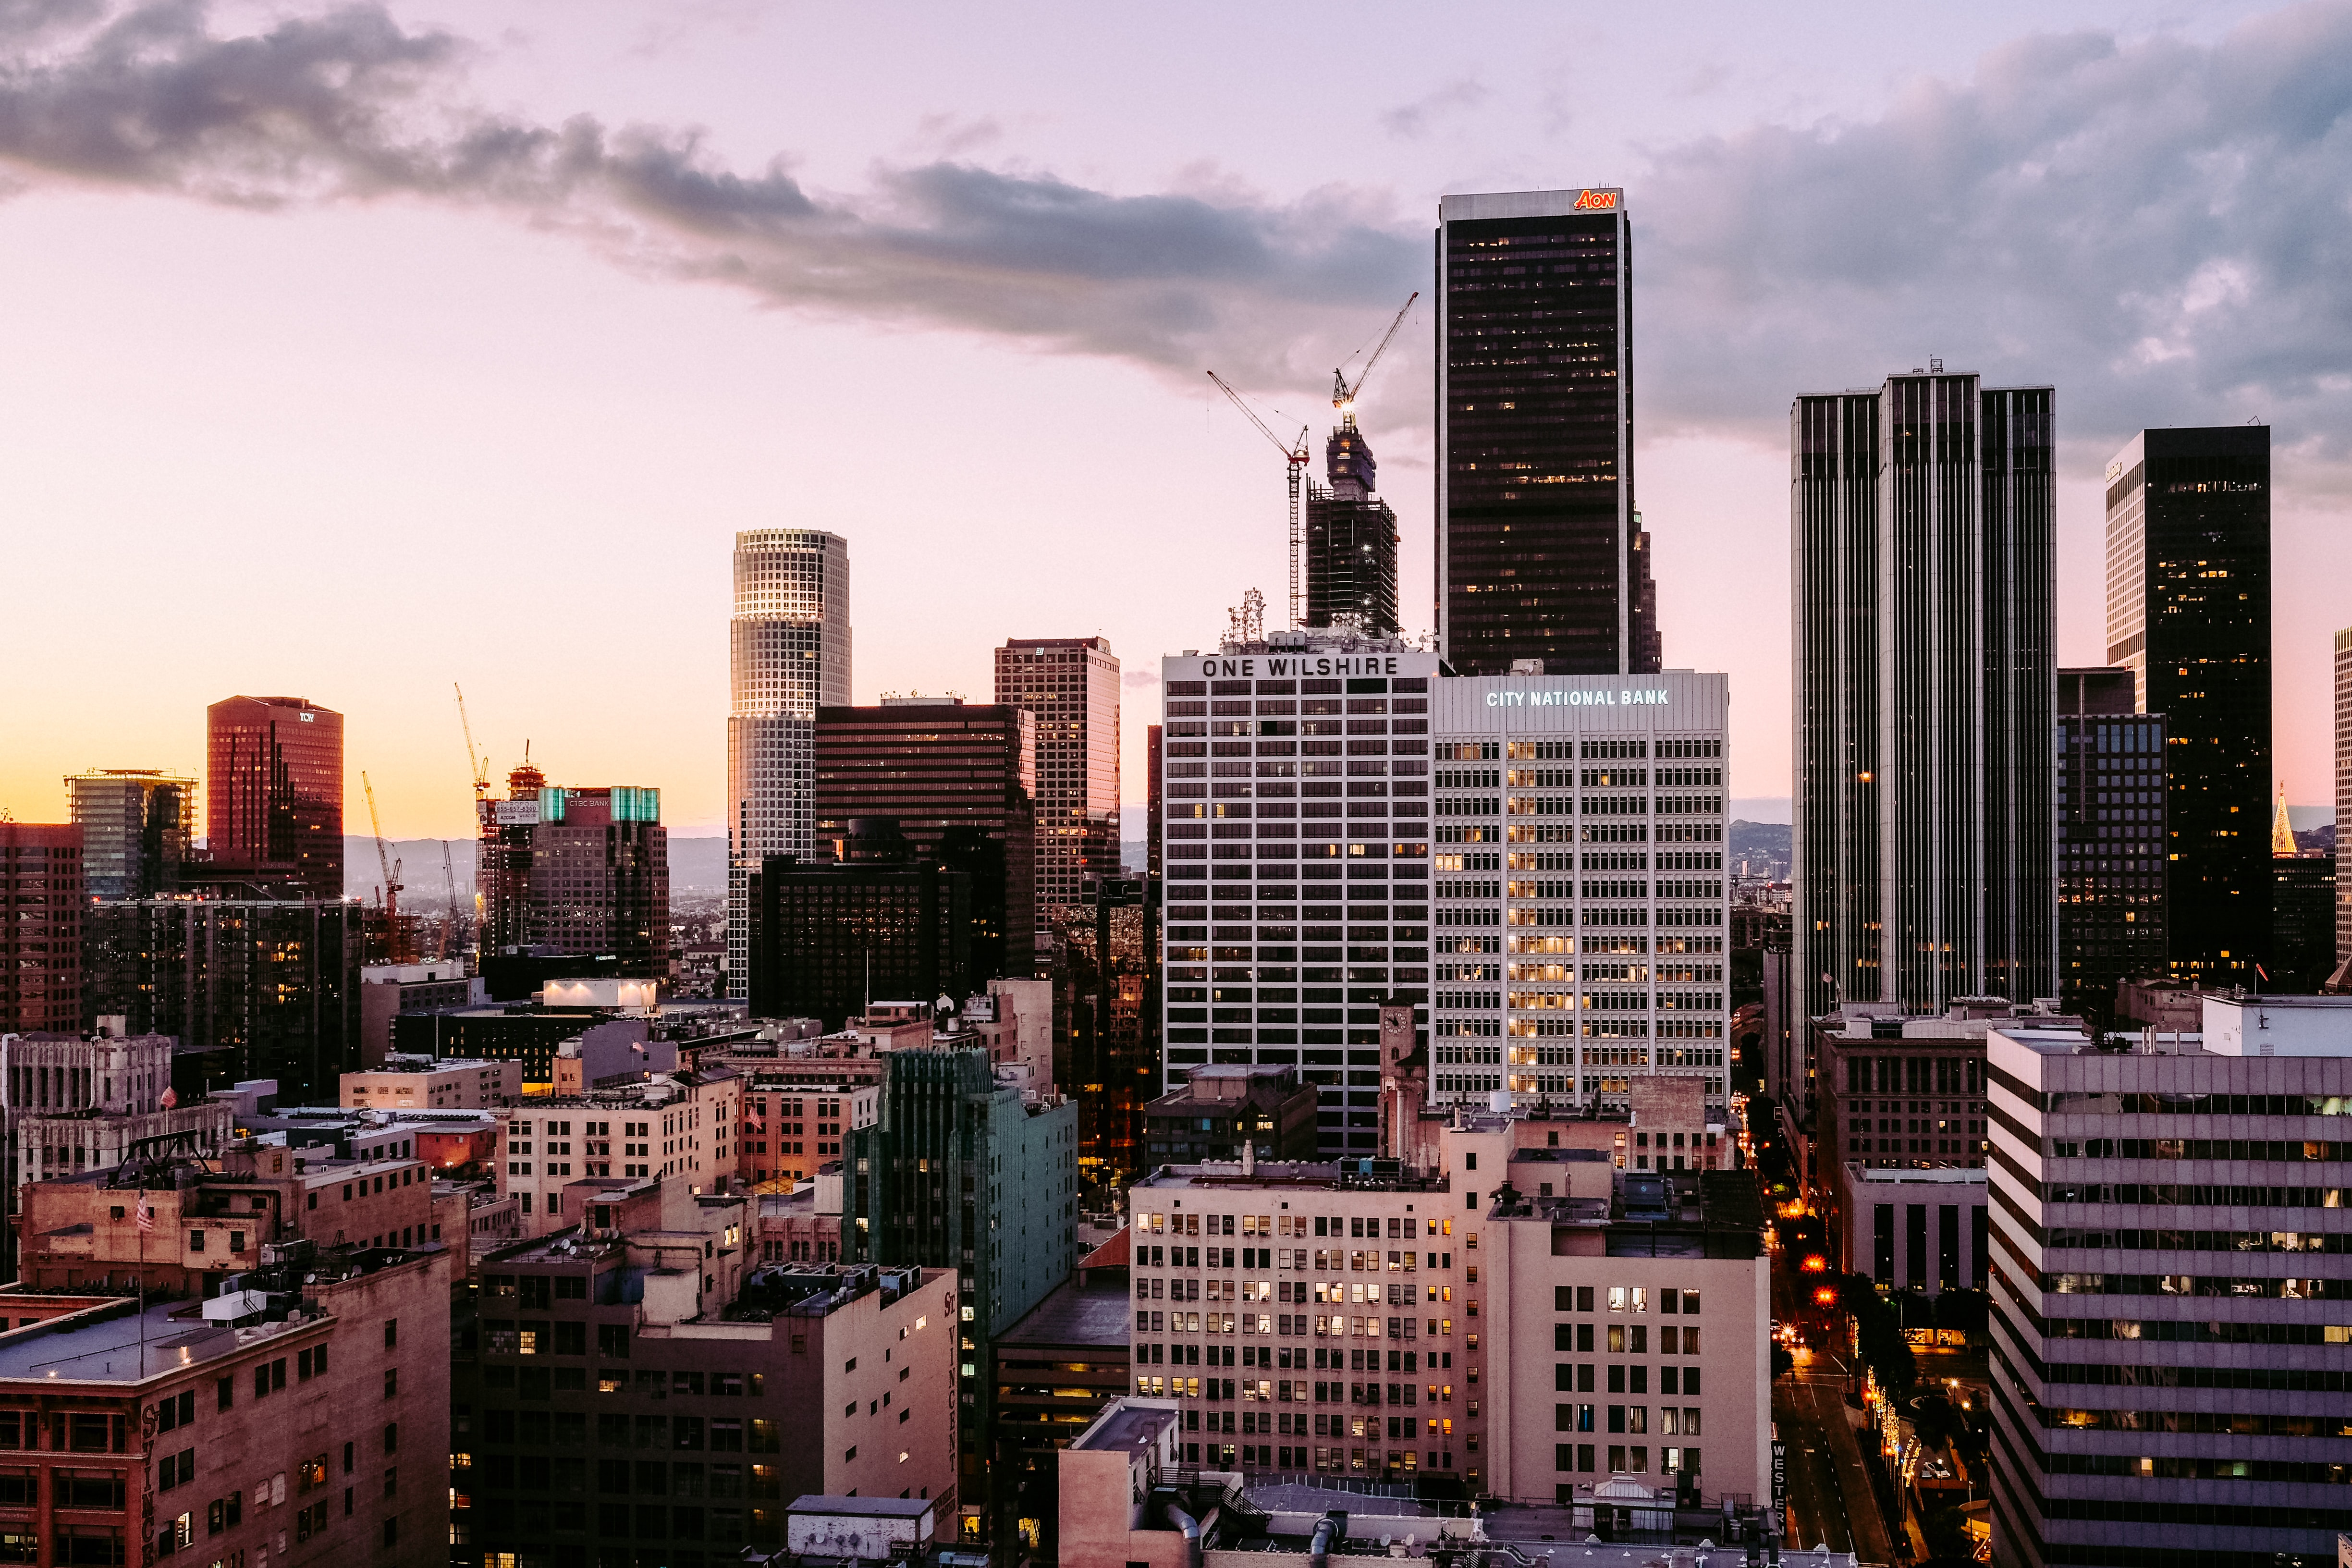 Sunset with streak of clouds covers the downtown Los Angeles sky, above One Wilshire Building and City National Bank